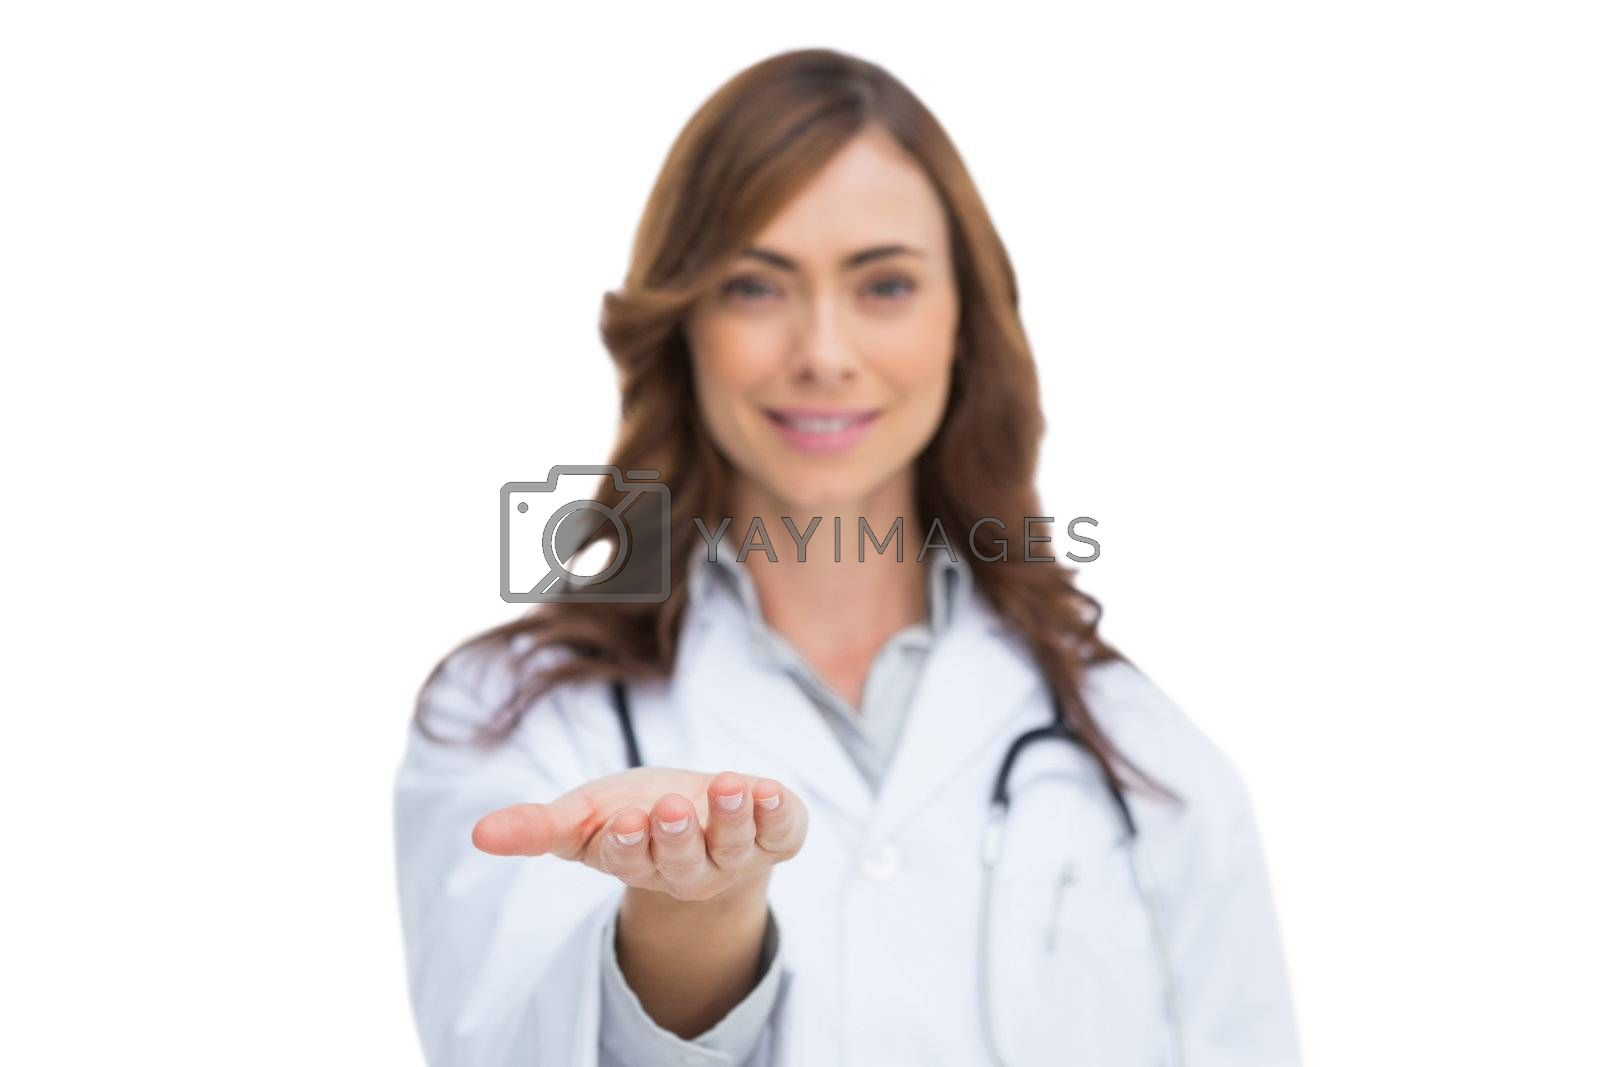 Smiling doctor showing something in her hand by Wavebreakmedia